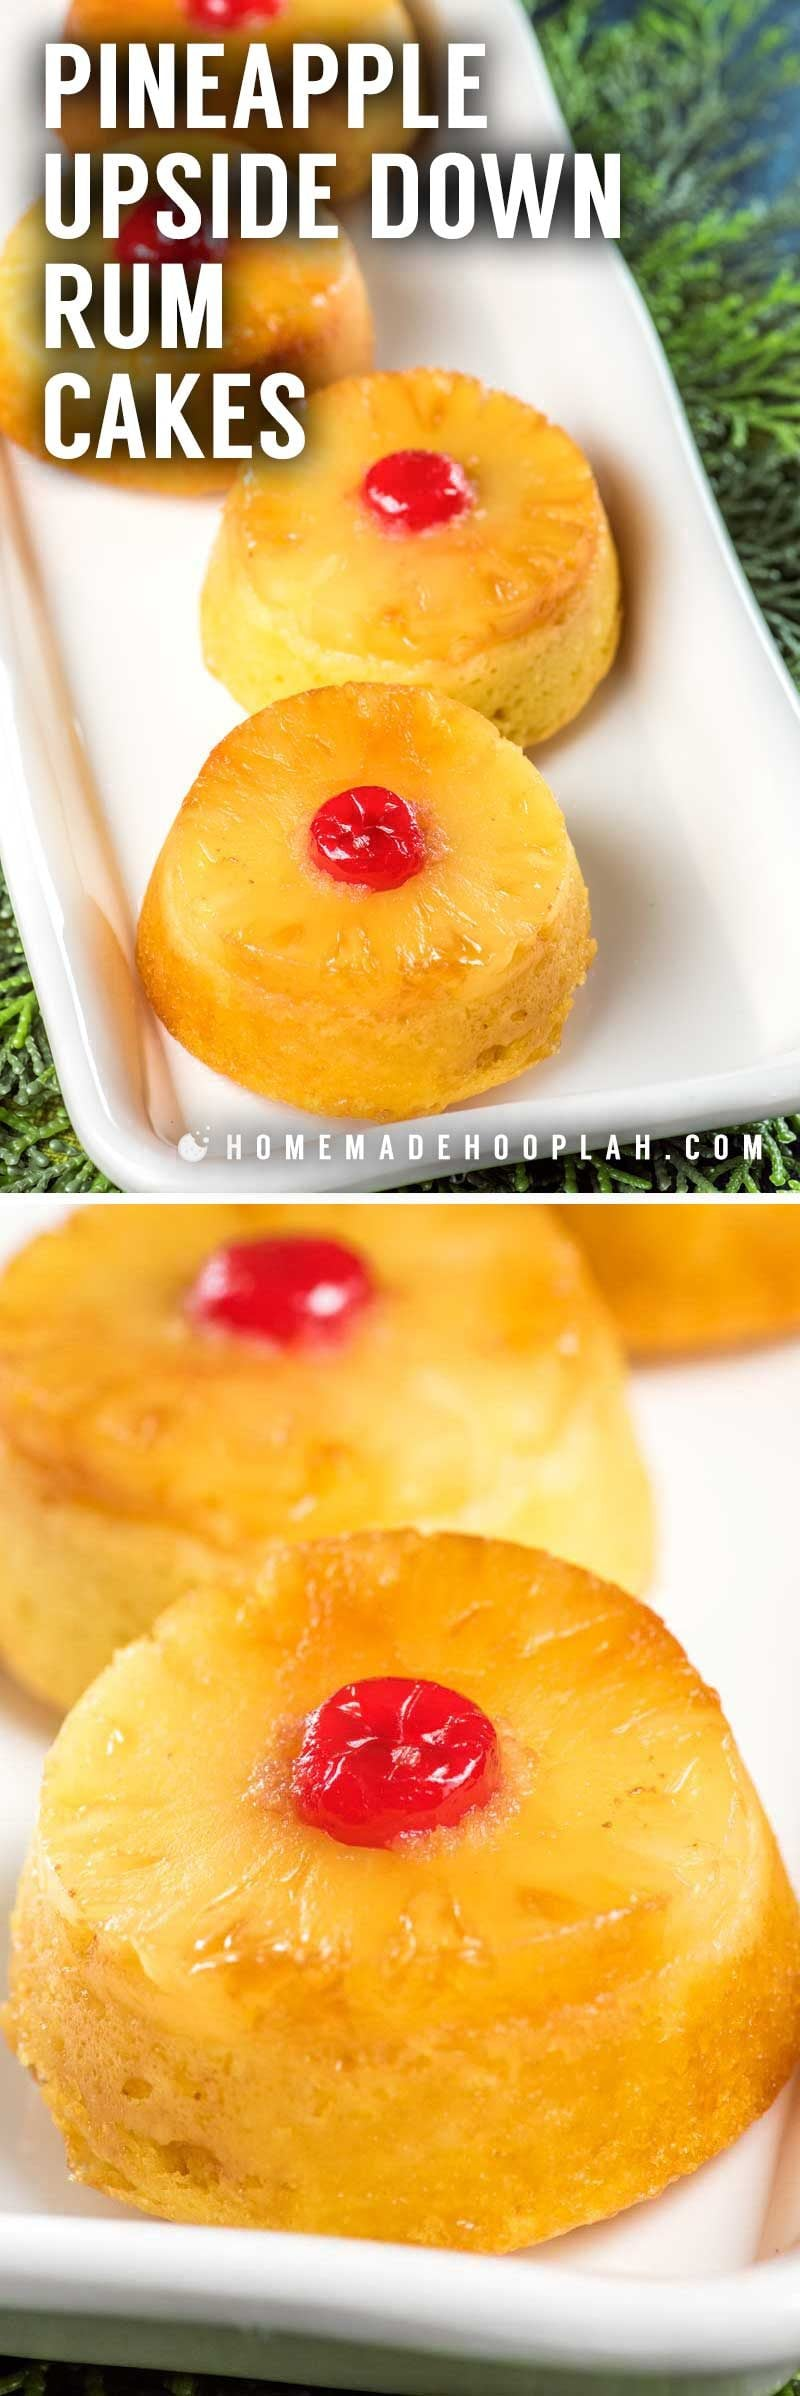 How to make individual pineapple upside down rum cakes.